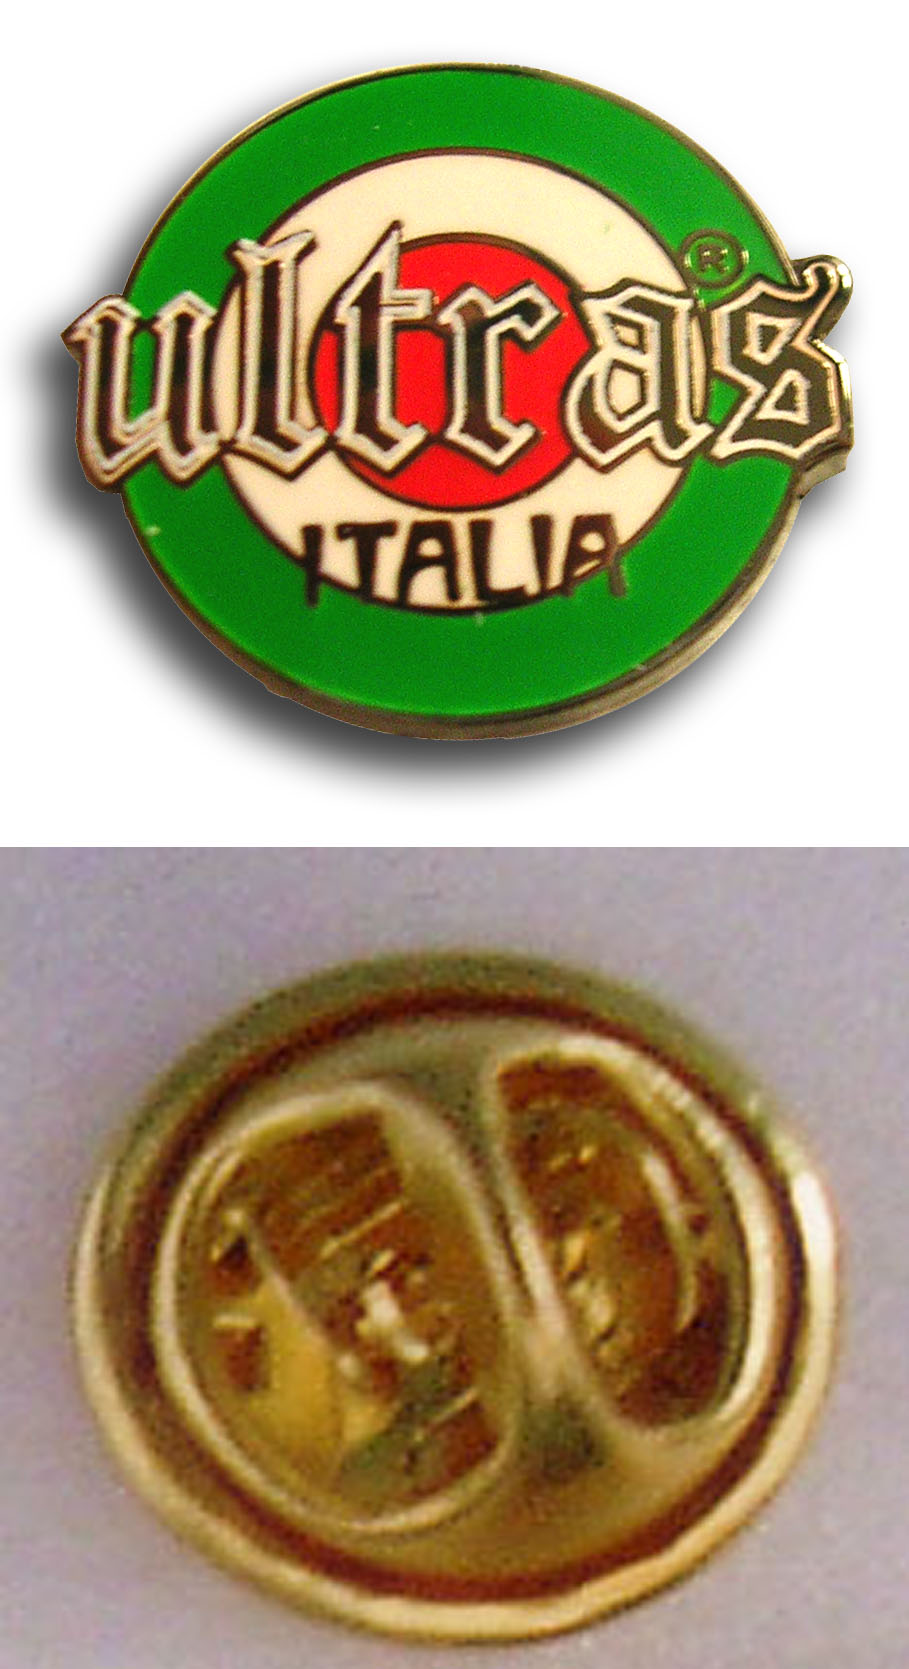 ULTRAS ITALIA Cerchio Pins & Stickers